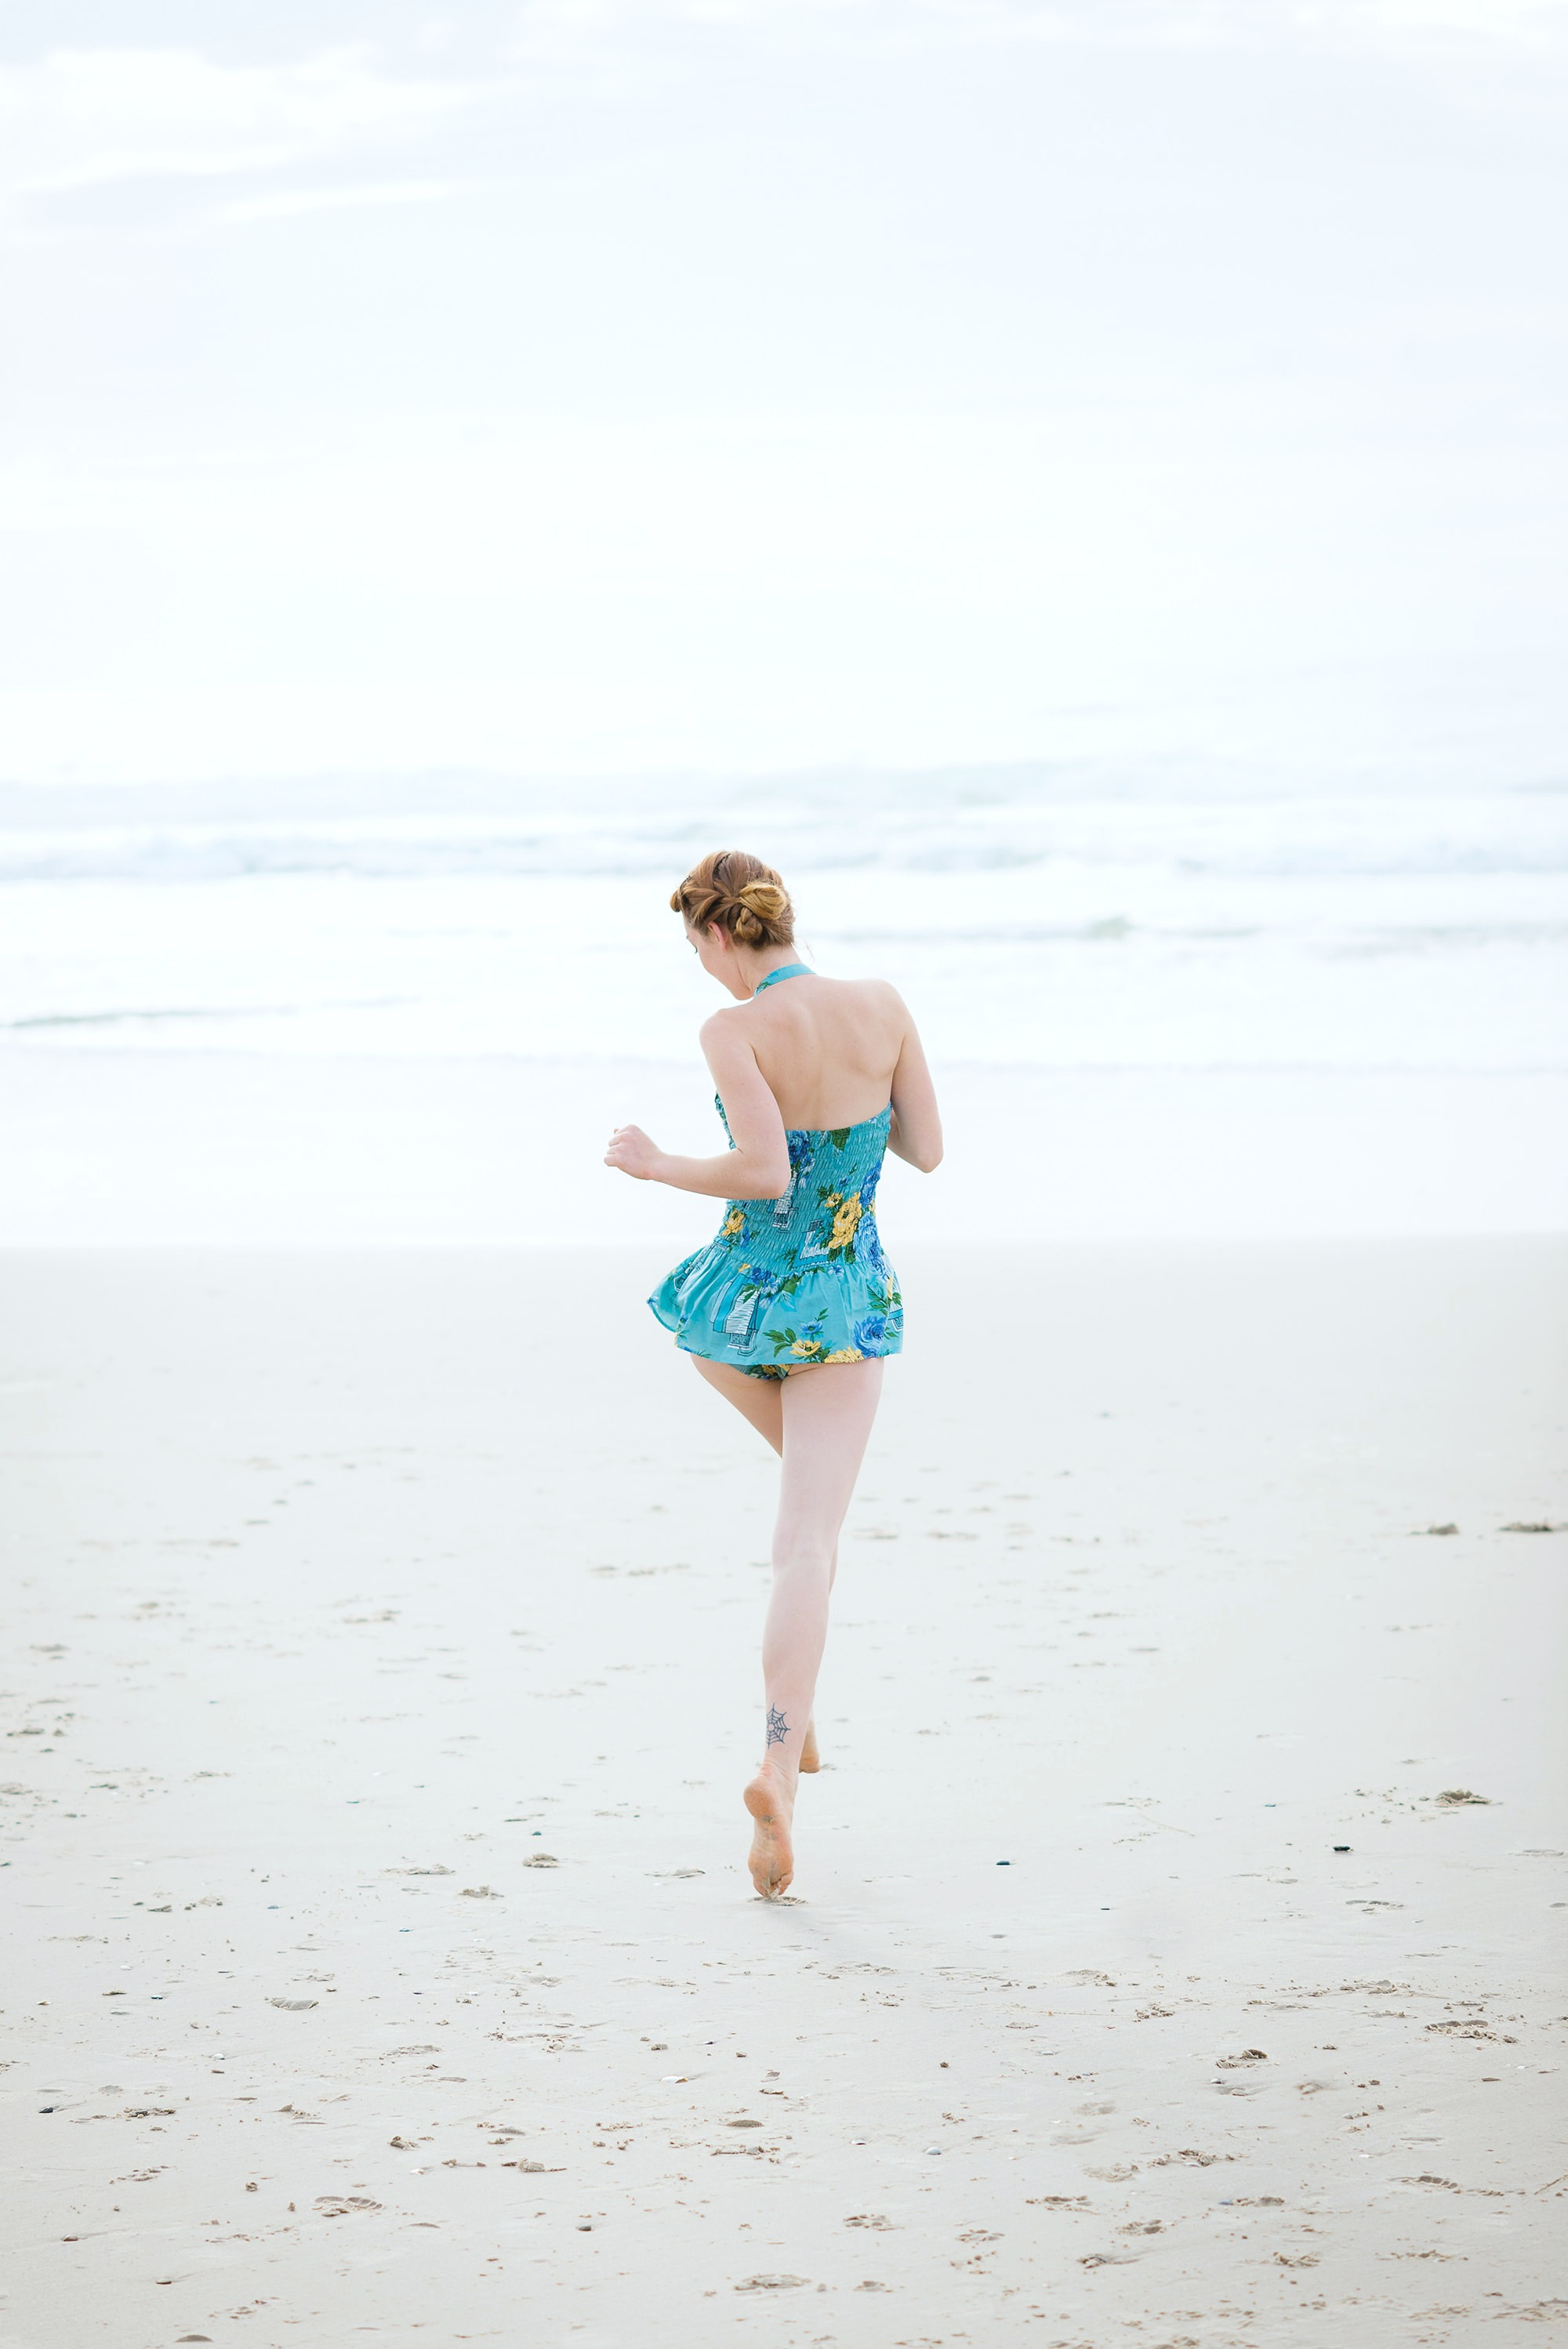 Woman prancing on the beach in a blue bathing suit.